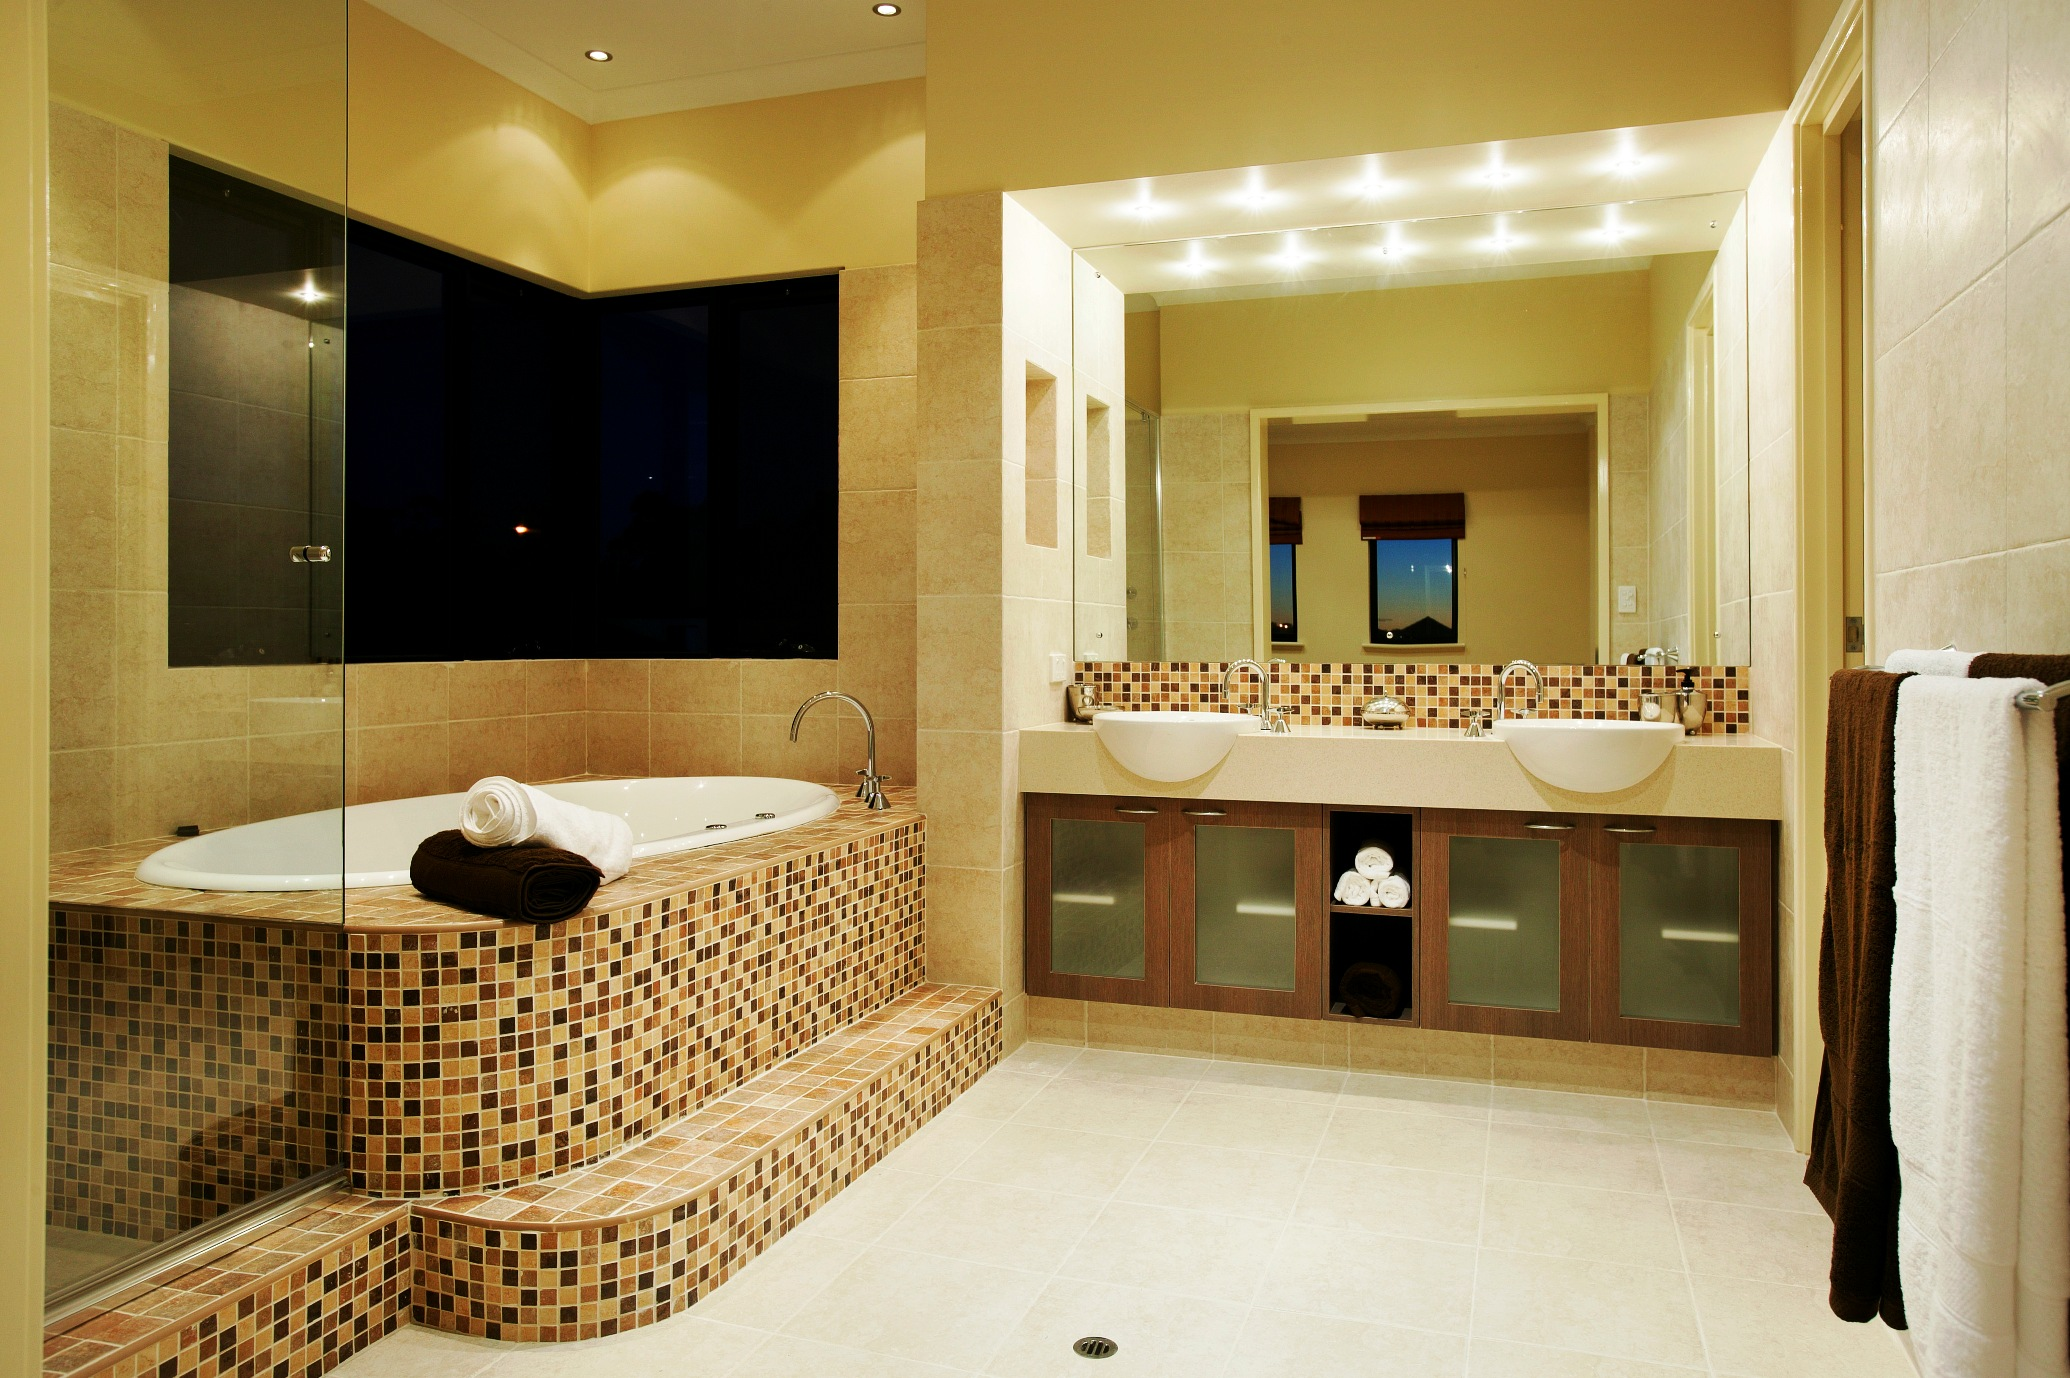 best decoration of bathroom homesfeedbest bathroom interior with stylish tile two sinks square mirror with lighting and towel hanger